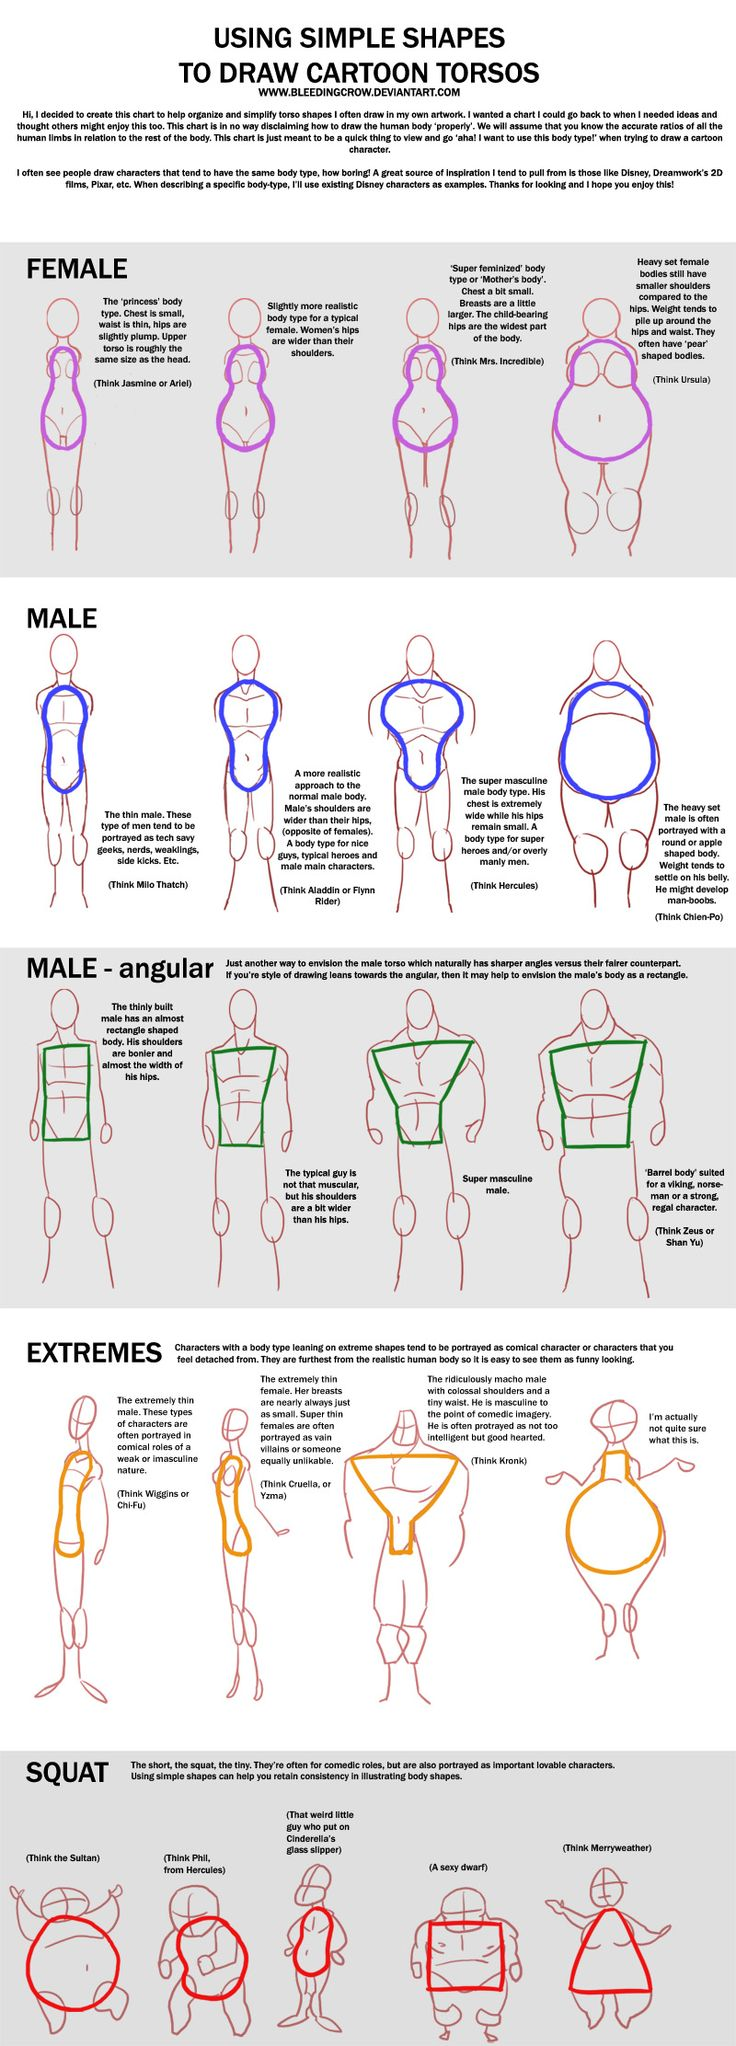 Chart - Cartoon Torso by macawnivore.deviantart.com on @deviantART